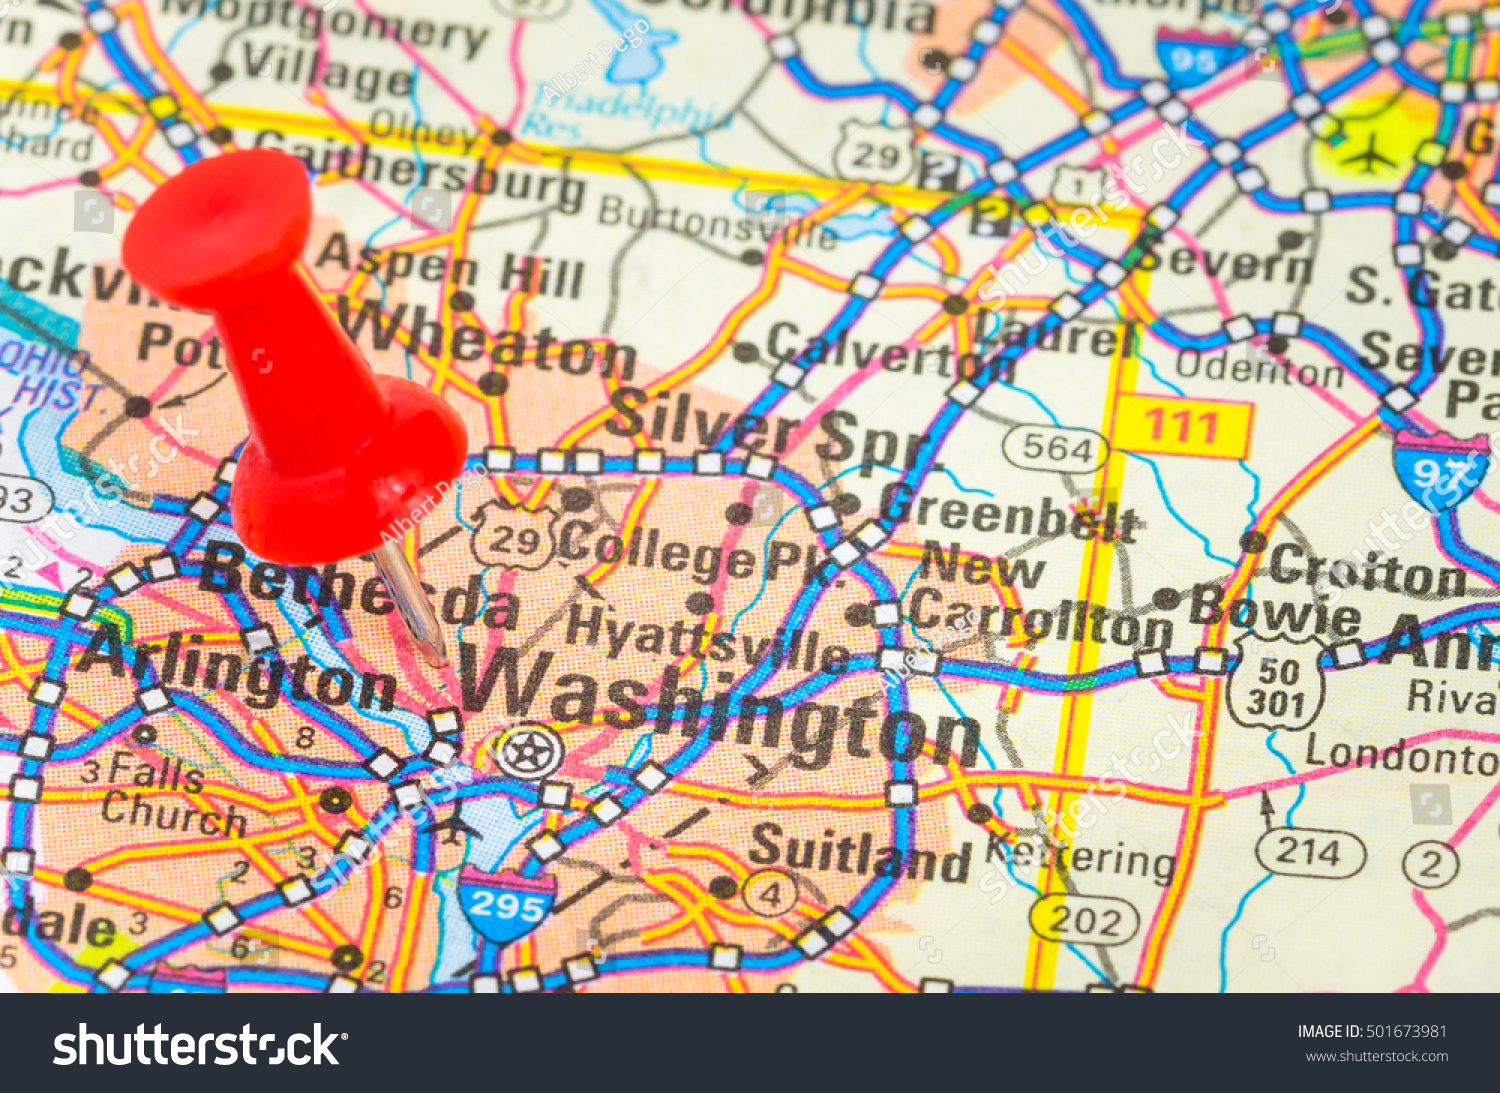 Red pushpin highlighting washington dc on stock photo 501673981 red pushpin highlighting washington dc on a road map shallow depth of field publicscrutiny Images